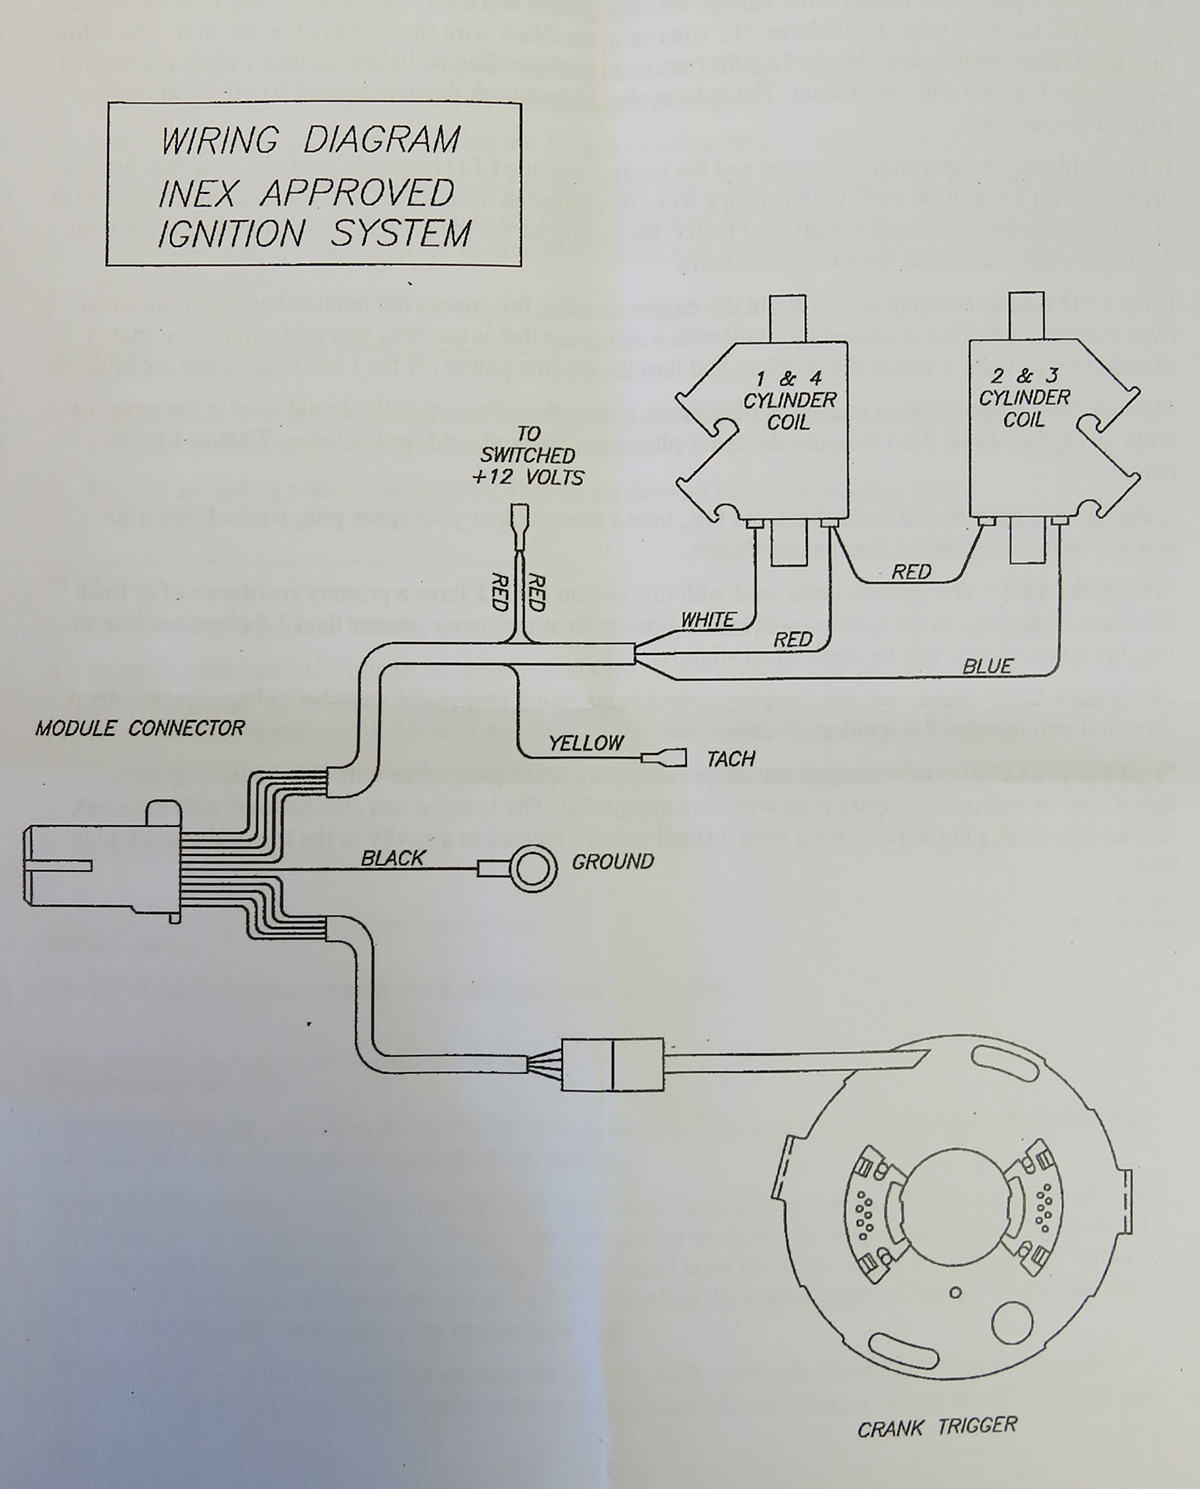 Dyna Ignition Wiring Diagram 1975 Z1 Coils Stock S Schematic Diagrams Electrical 2000i Coil